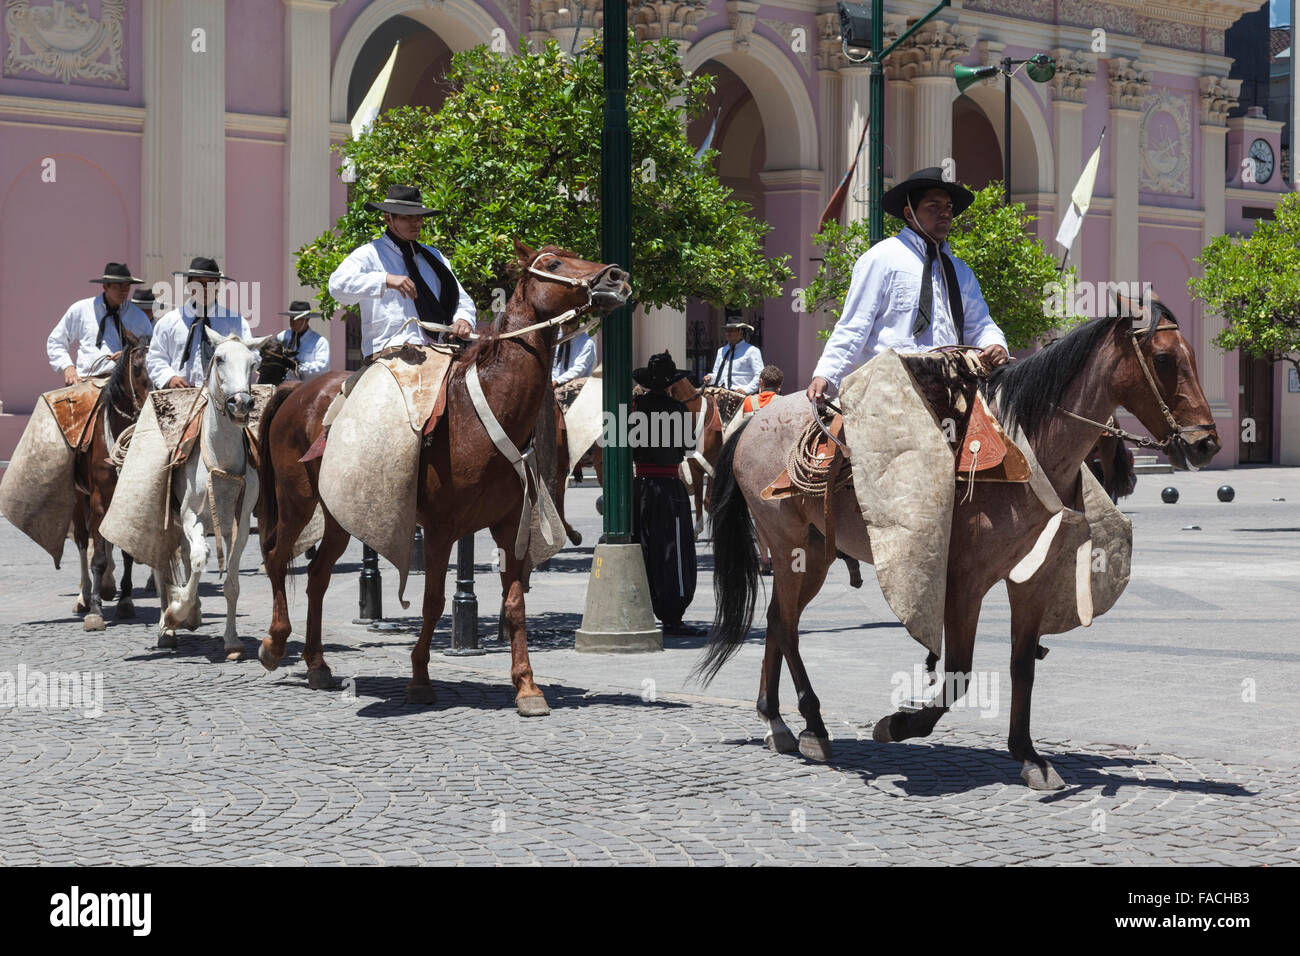 Gauchos on horseback in the town centre of Salta, Argentina - Stock Image